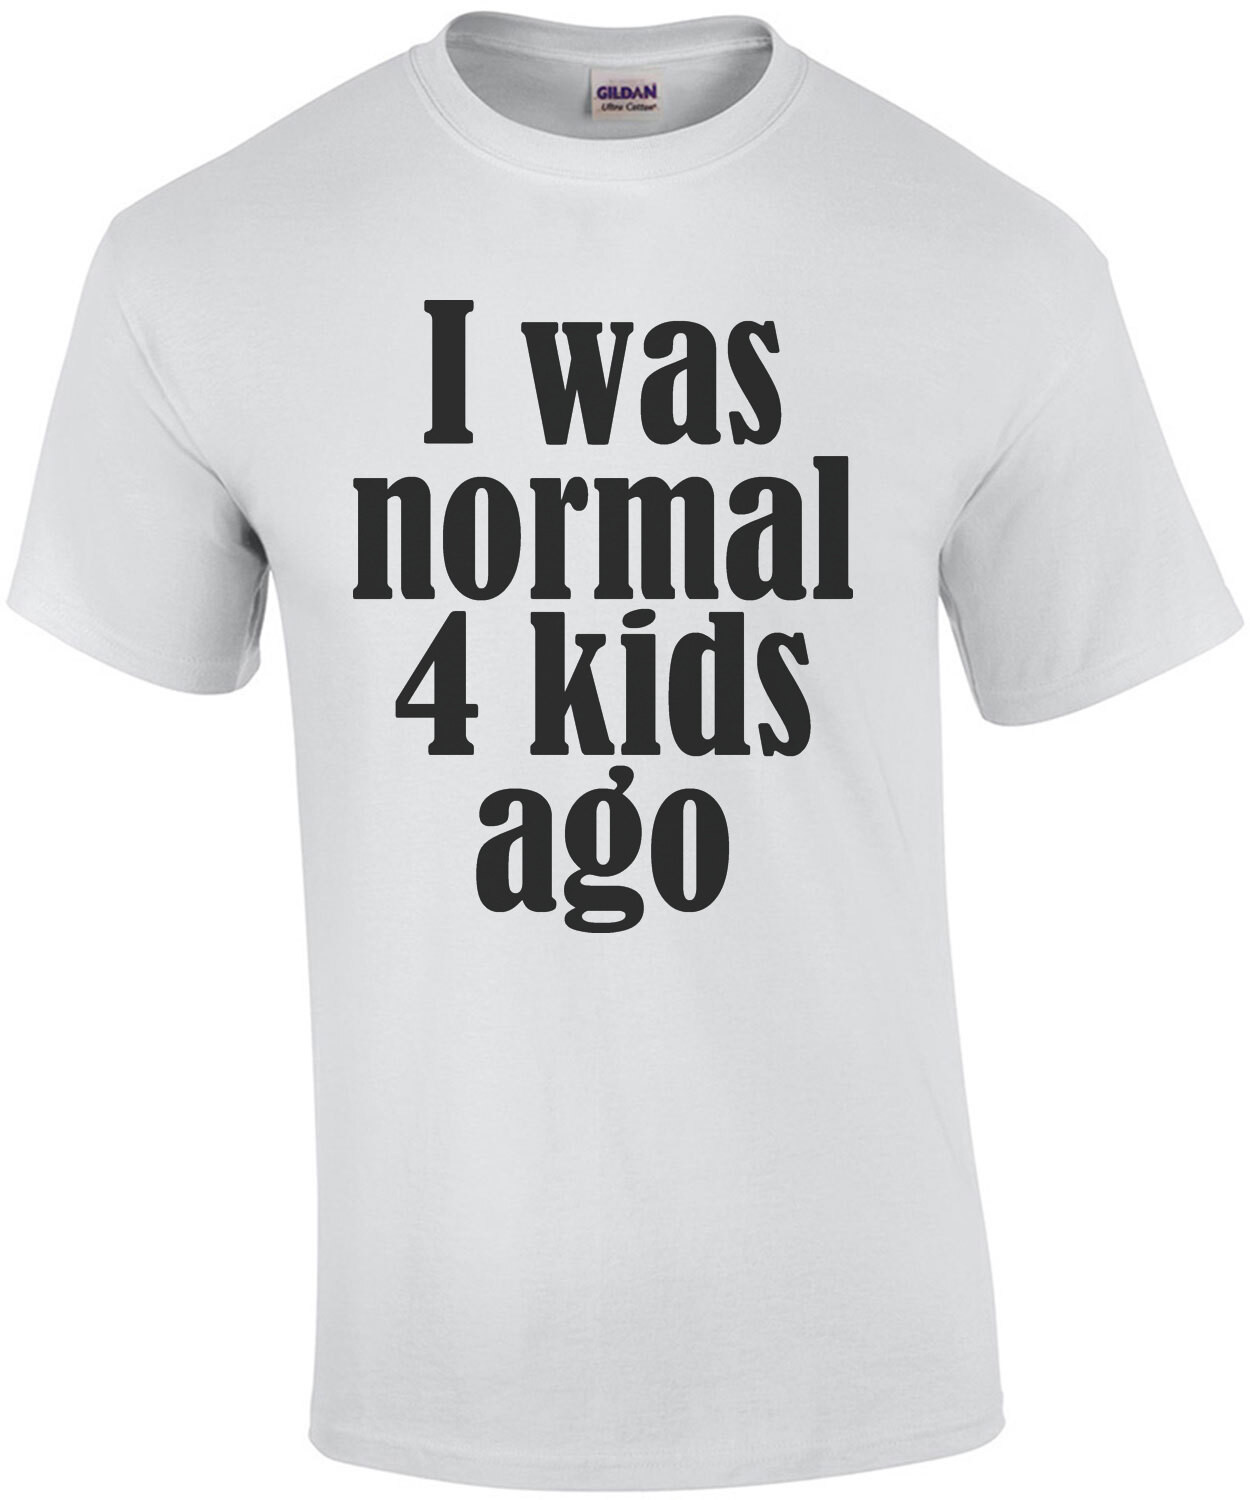 I was normal 4 kids ago - funny parent t-shirt